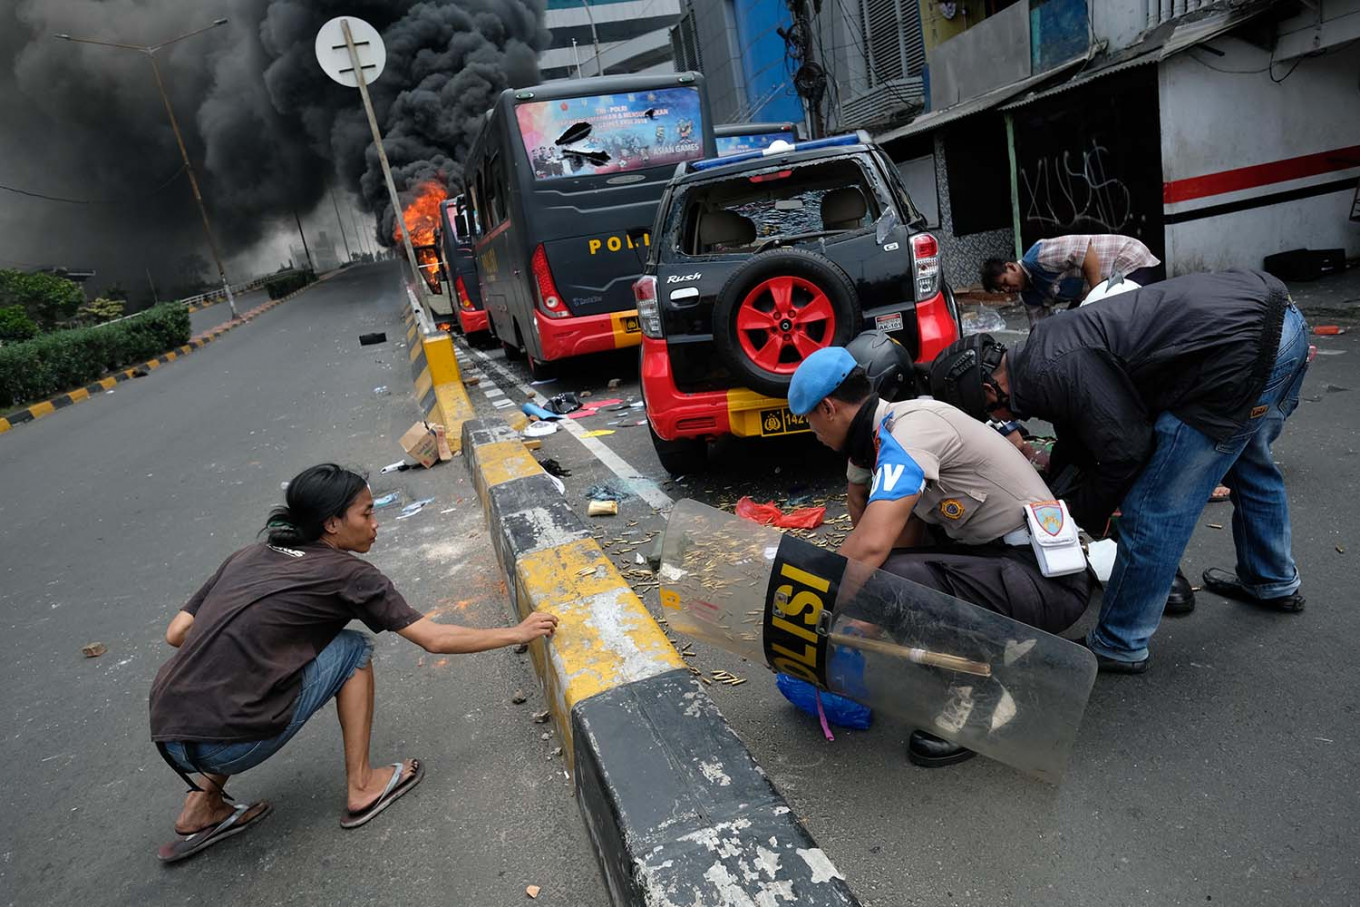 A young man helps policemen gather bullets from a police car damaged by rioters in Slipi, West Jakarta. JP/Jerry Adiguna